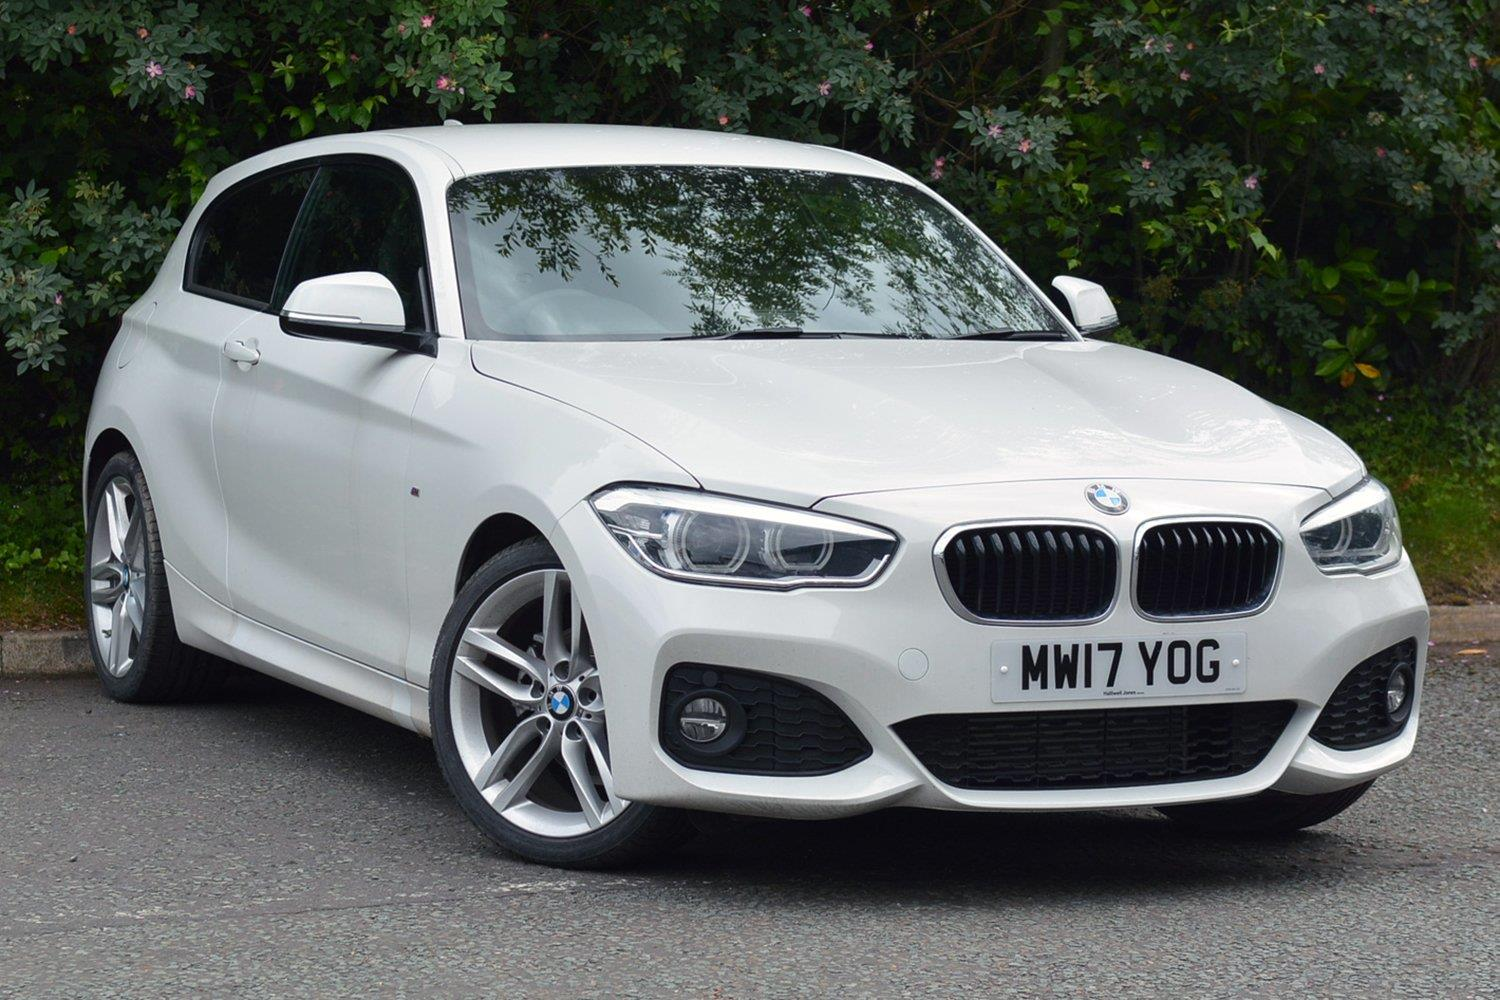 BMW 1 Series 3-door Sports Hatch MW17YOG - Image 8